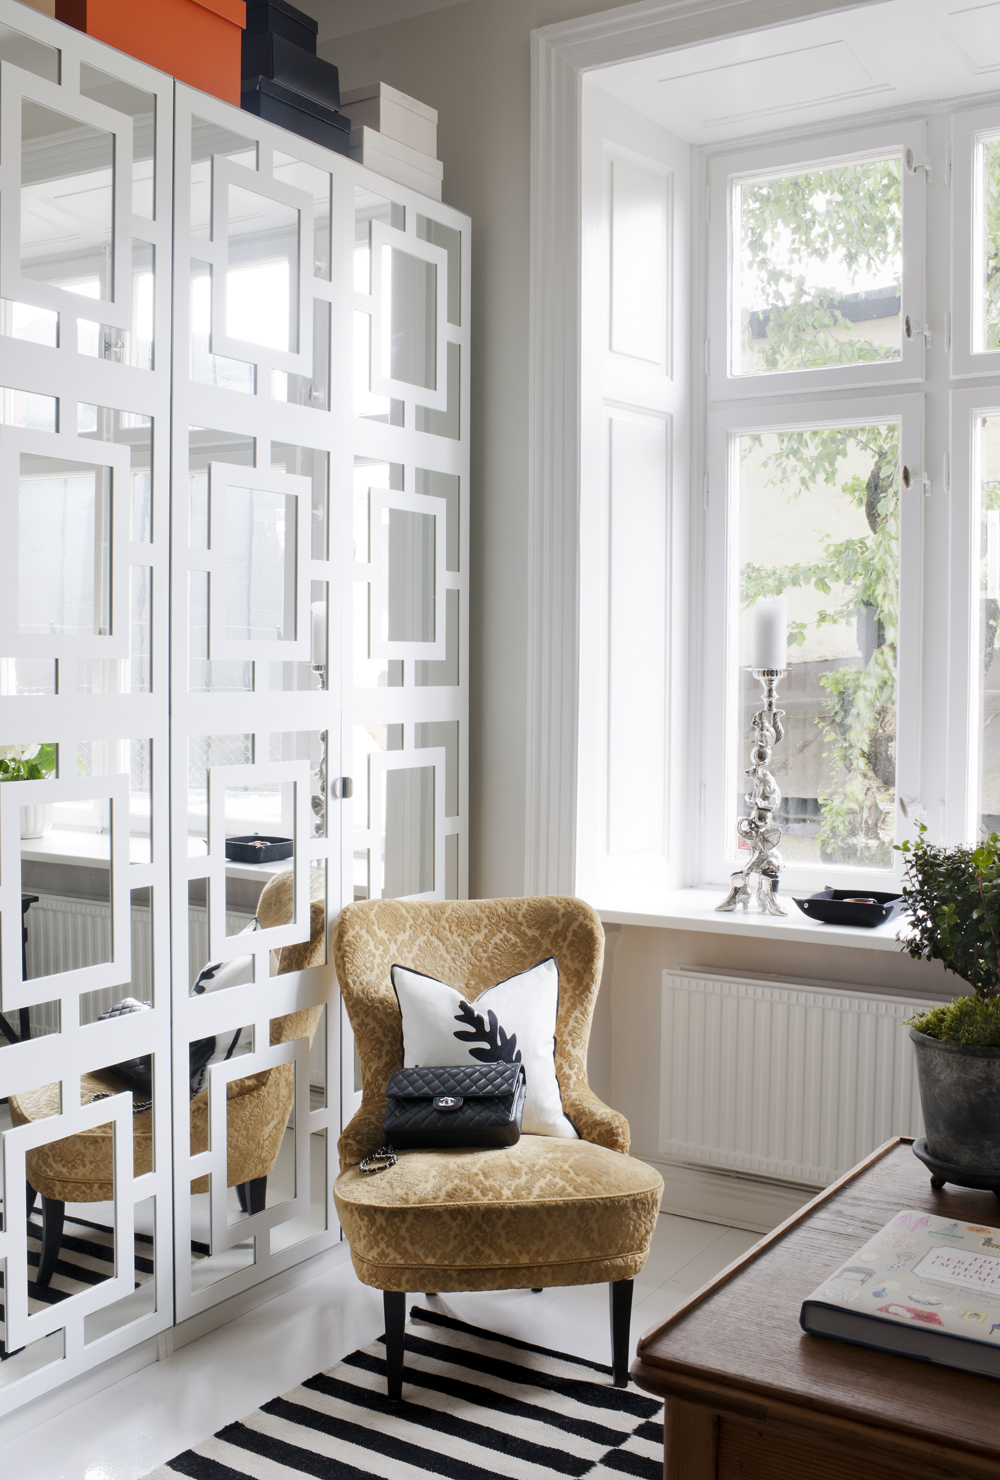 Best scandinavian interior decor with yellowish chair before desk with black and white striped area rug